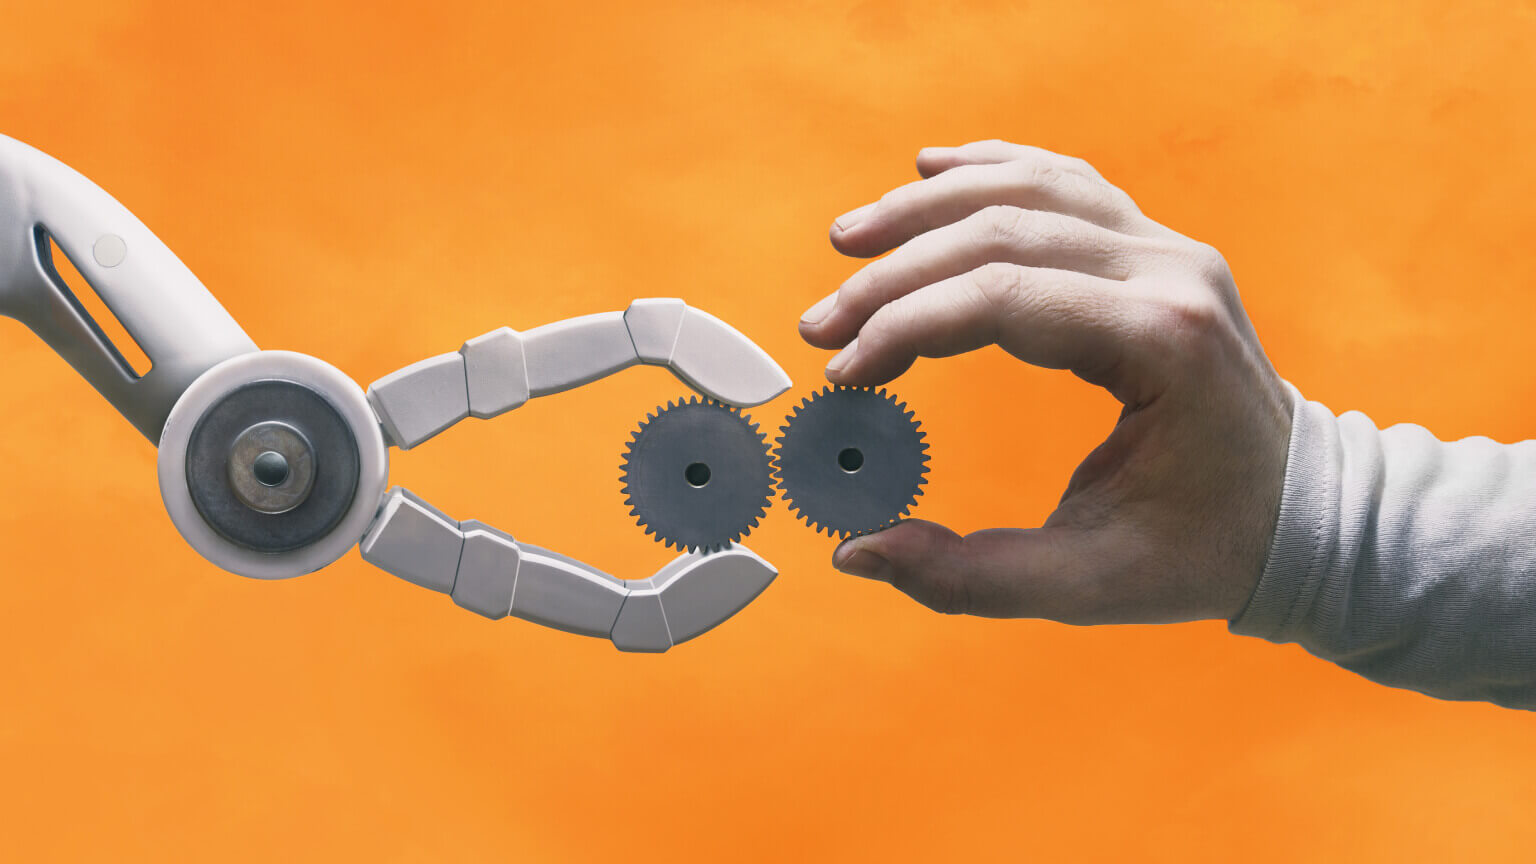 Bot and human hands holding cogs